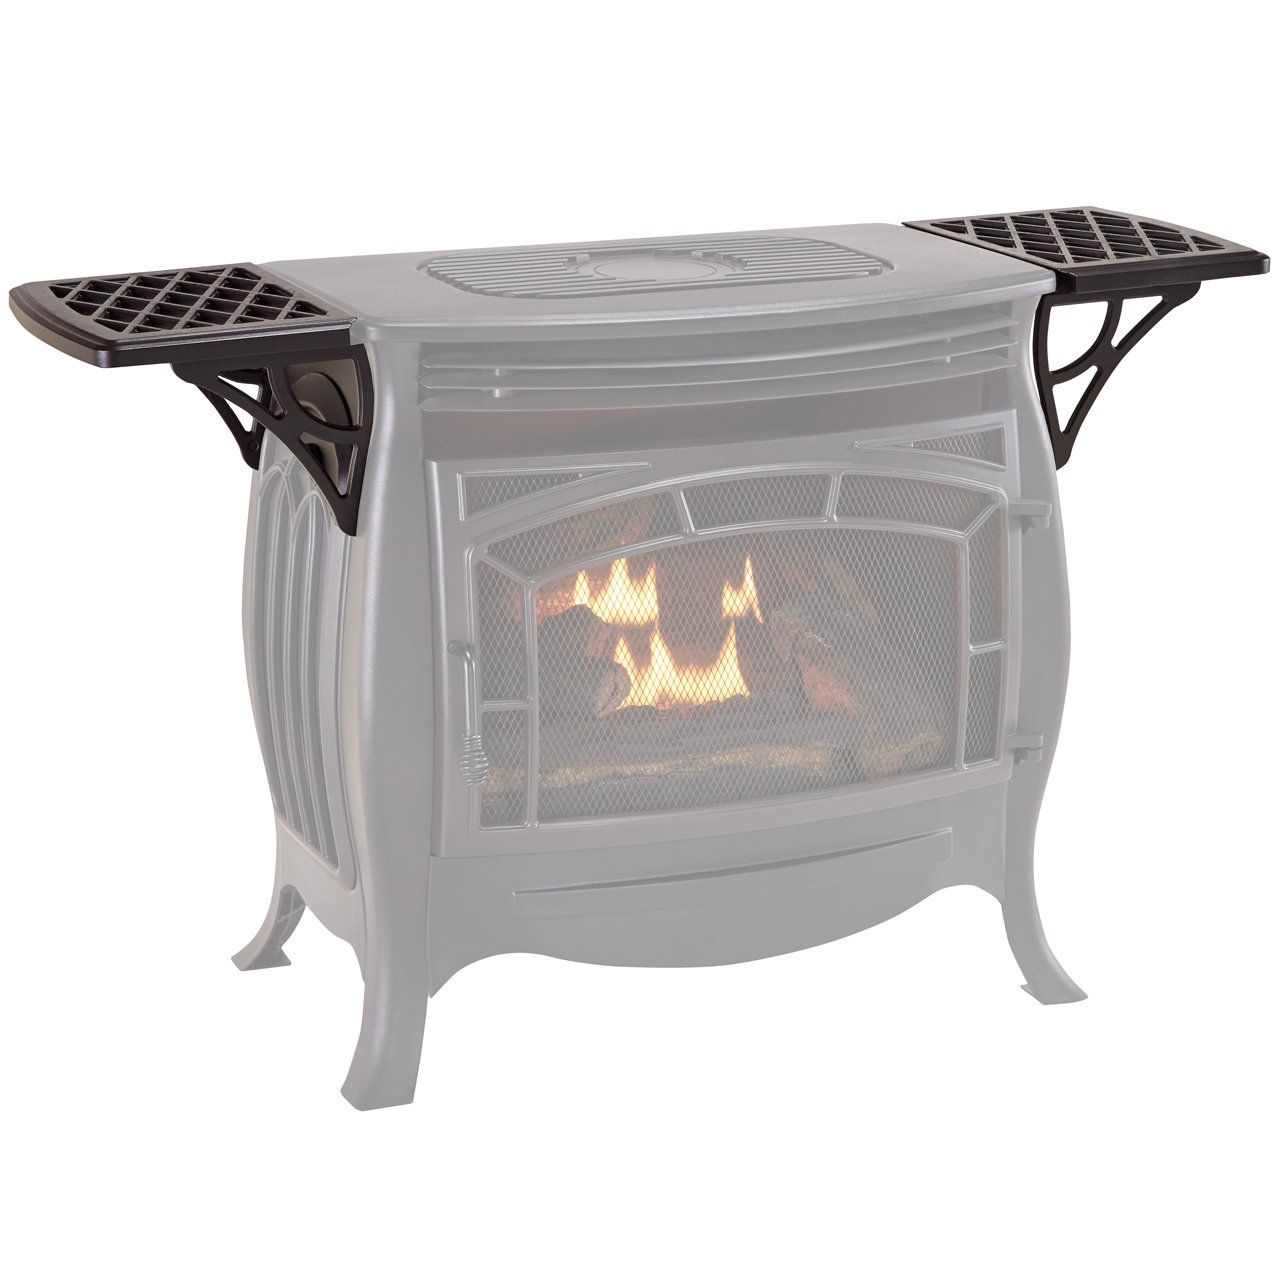 Duluth Forge Shelves for Ventless Gas Stove - Model# FDSR25SG Factory Buys Direct FDSR25-GF